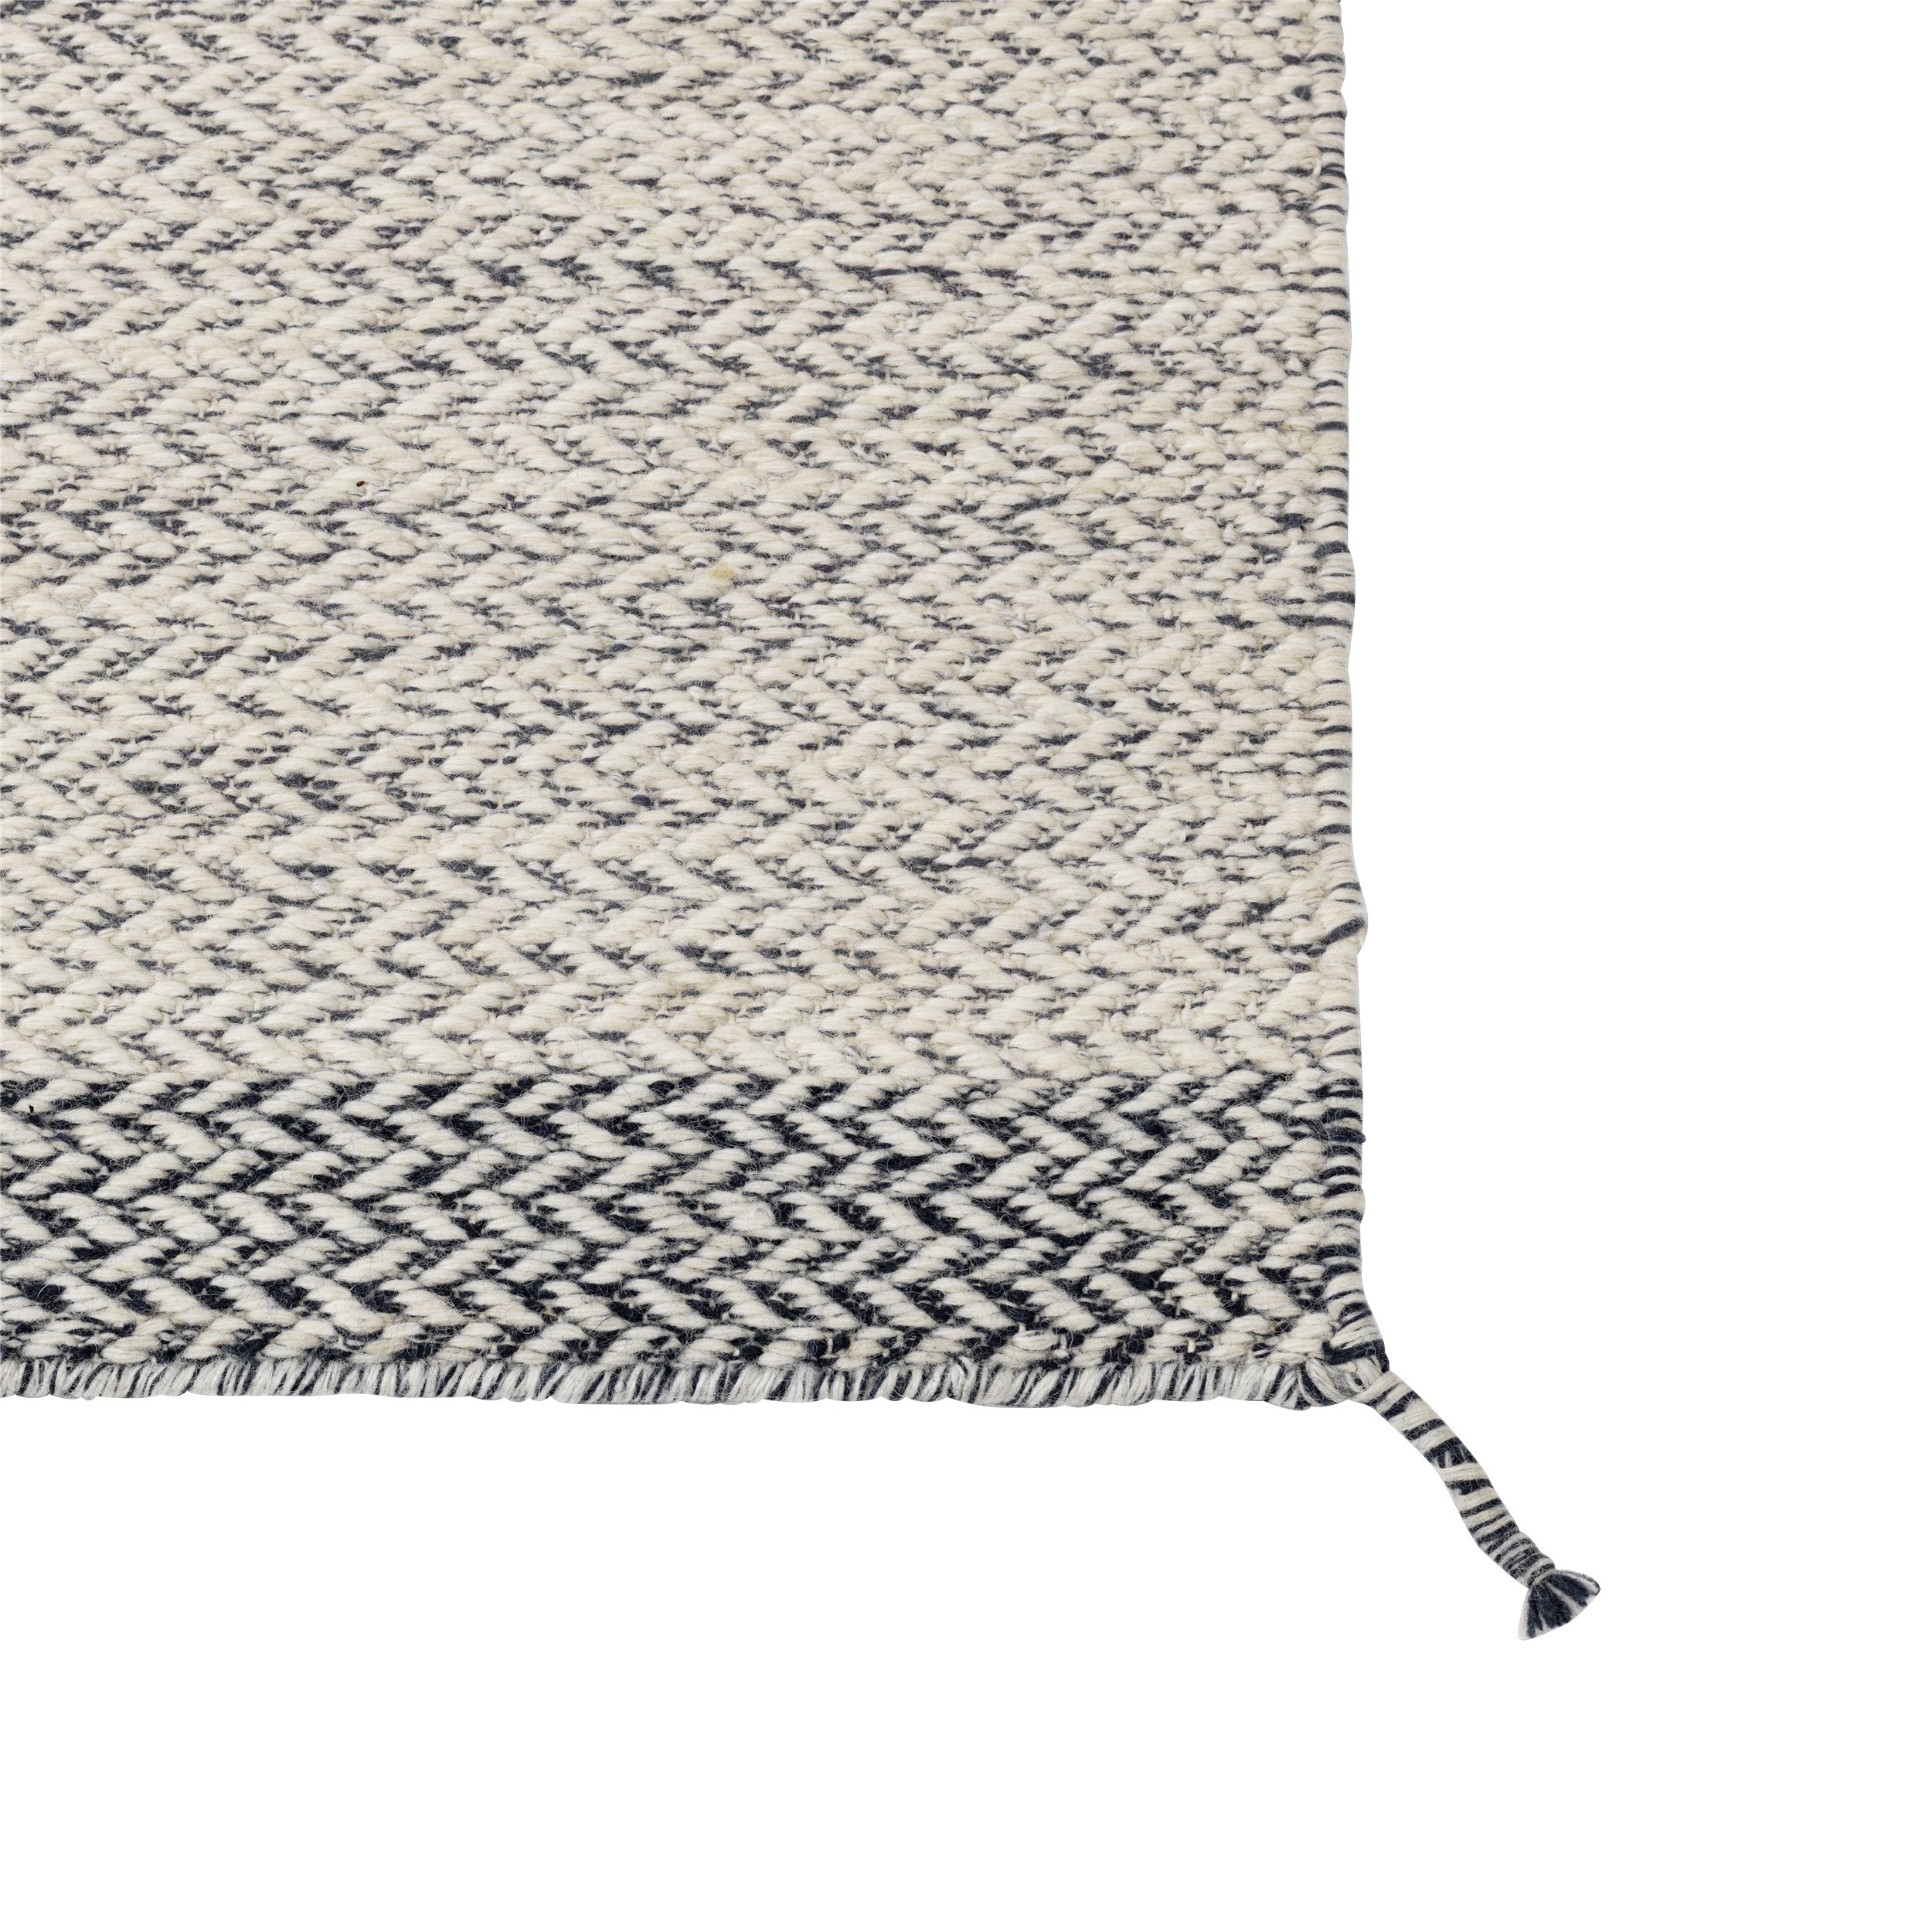 Ply rug 85 x 140 off-white